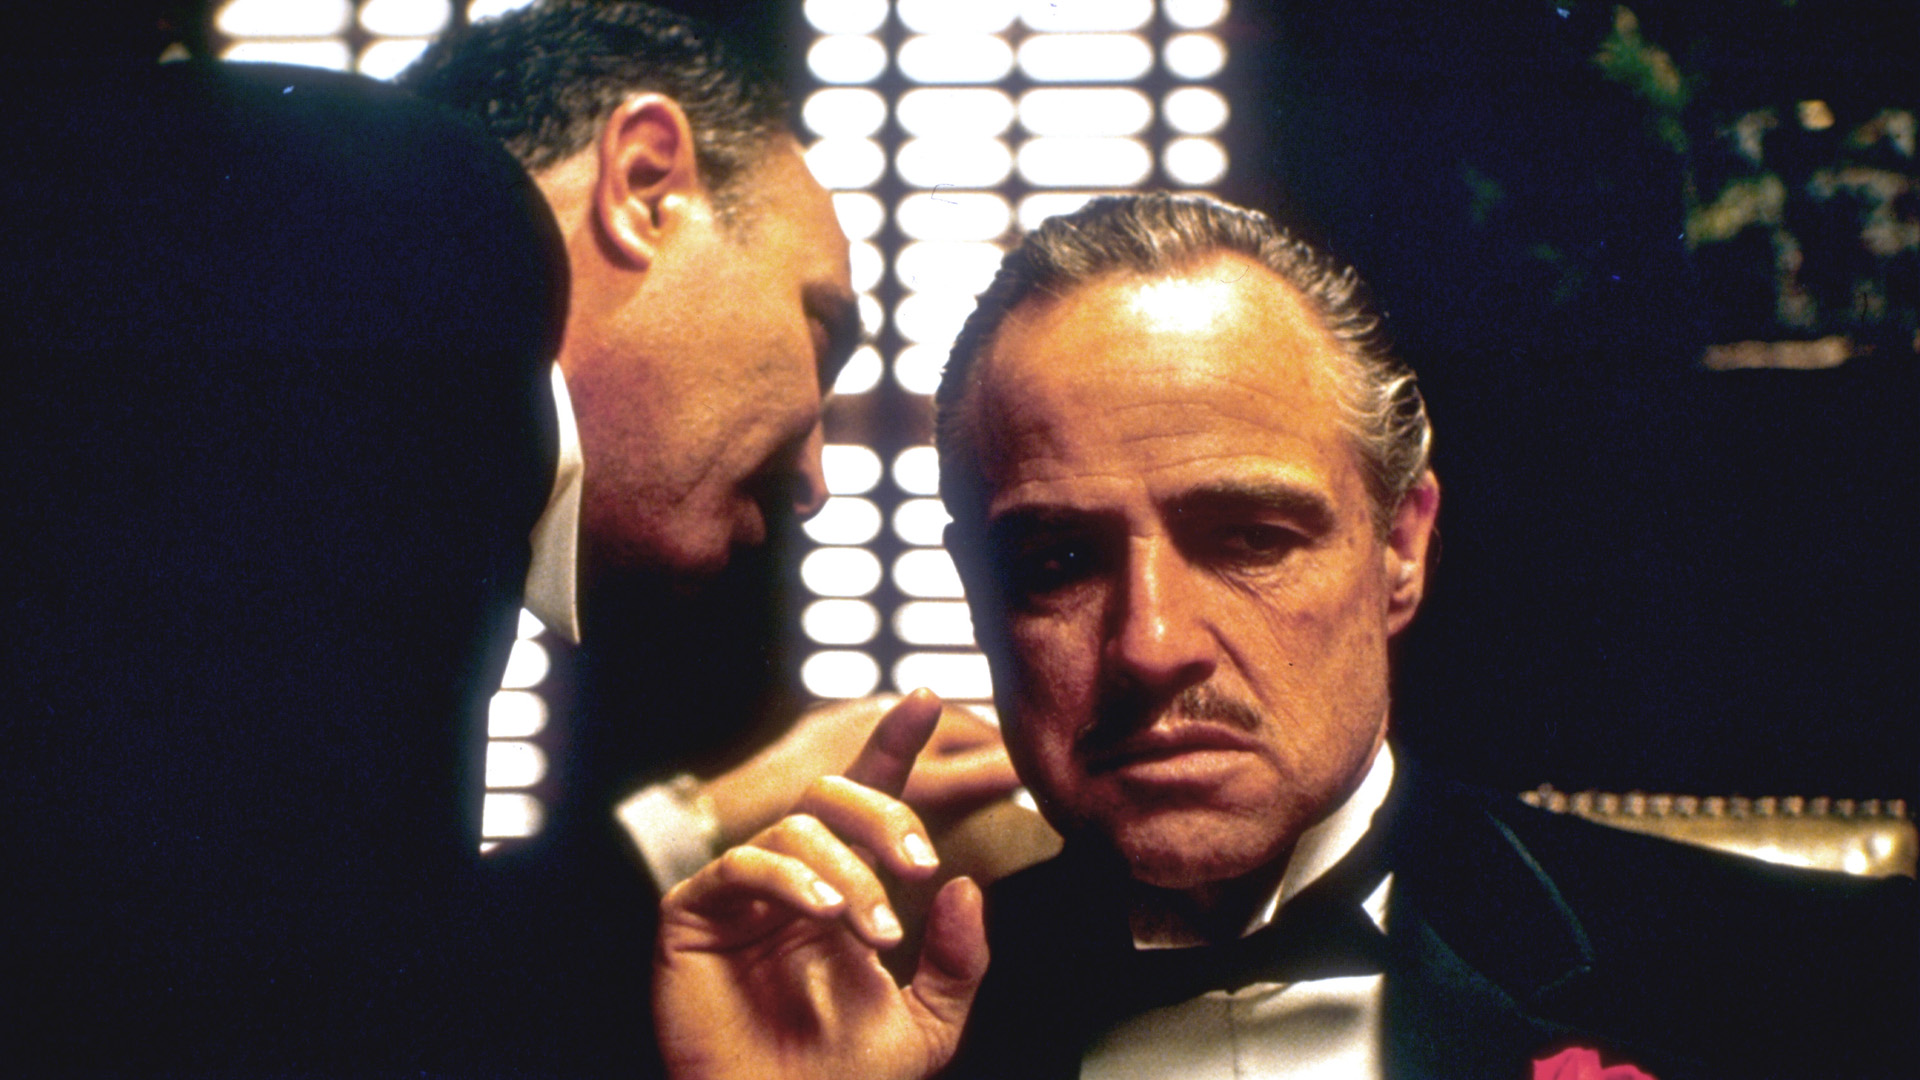 The_Godfather_EN_US_V1_60011152.jpg